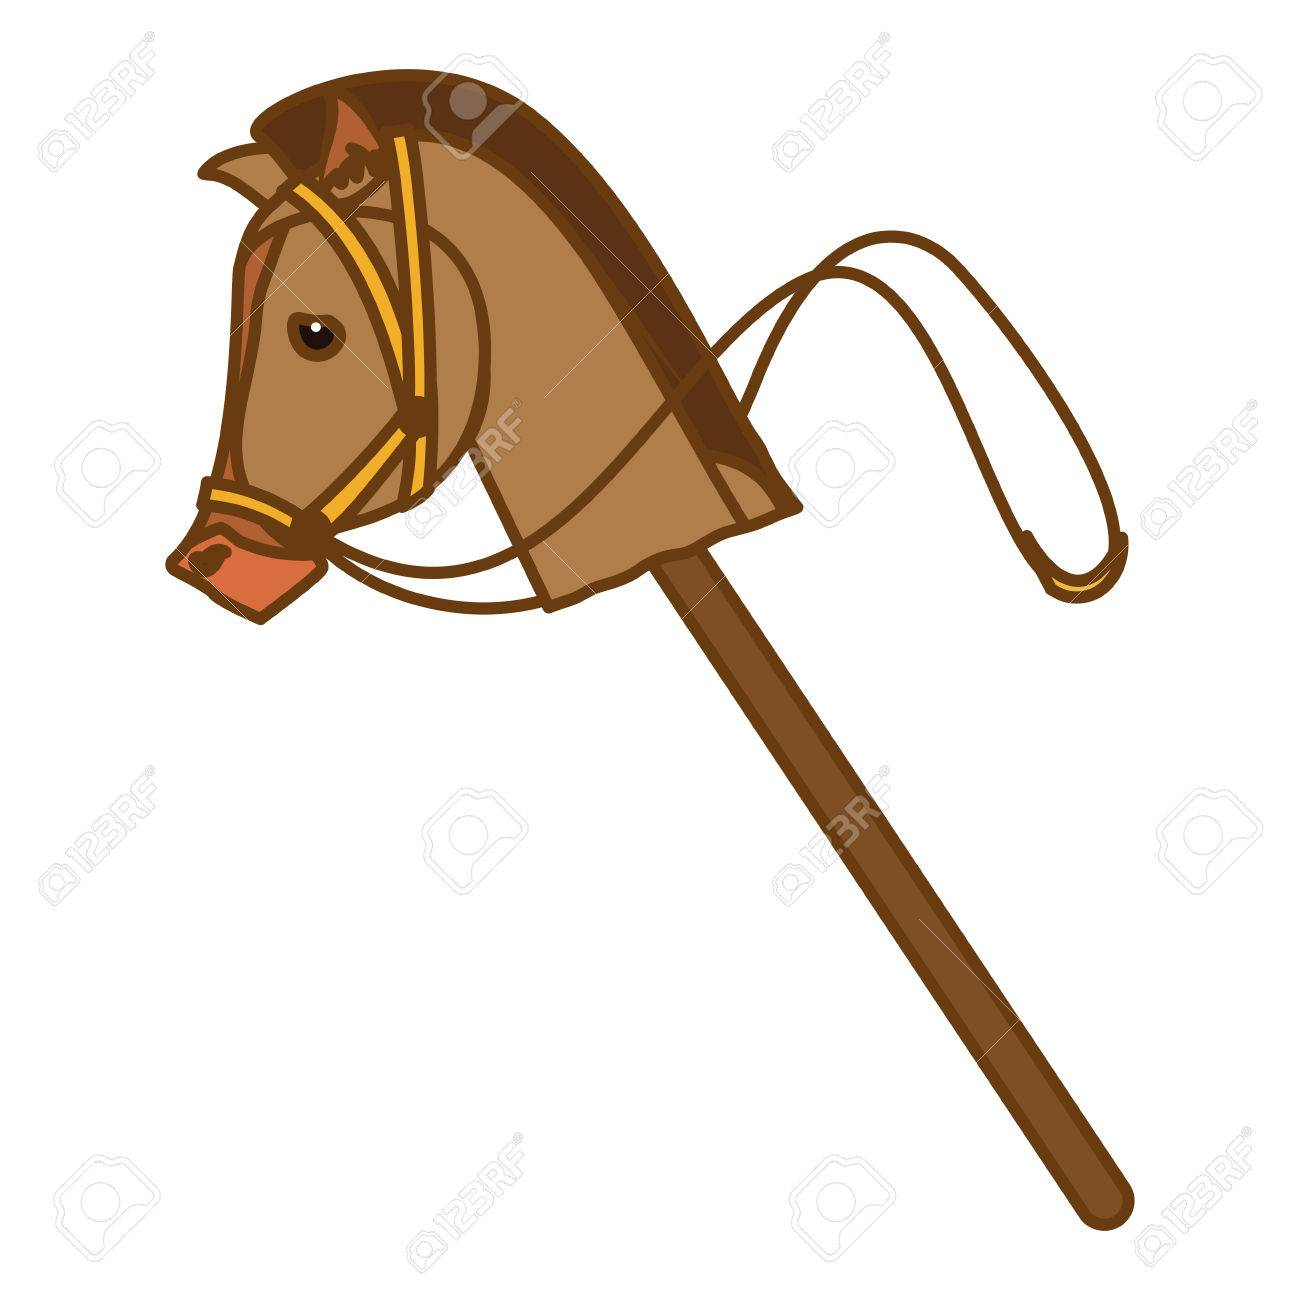 Toy Horse Equine Icon Image Vector Illustration Design Royalty Free Cliparts Vectors And Stock Illustration Image 69437655